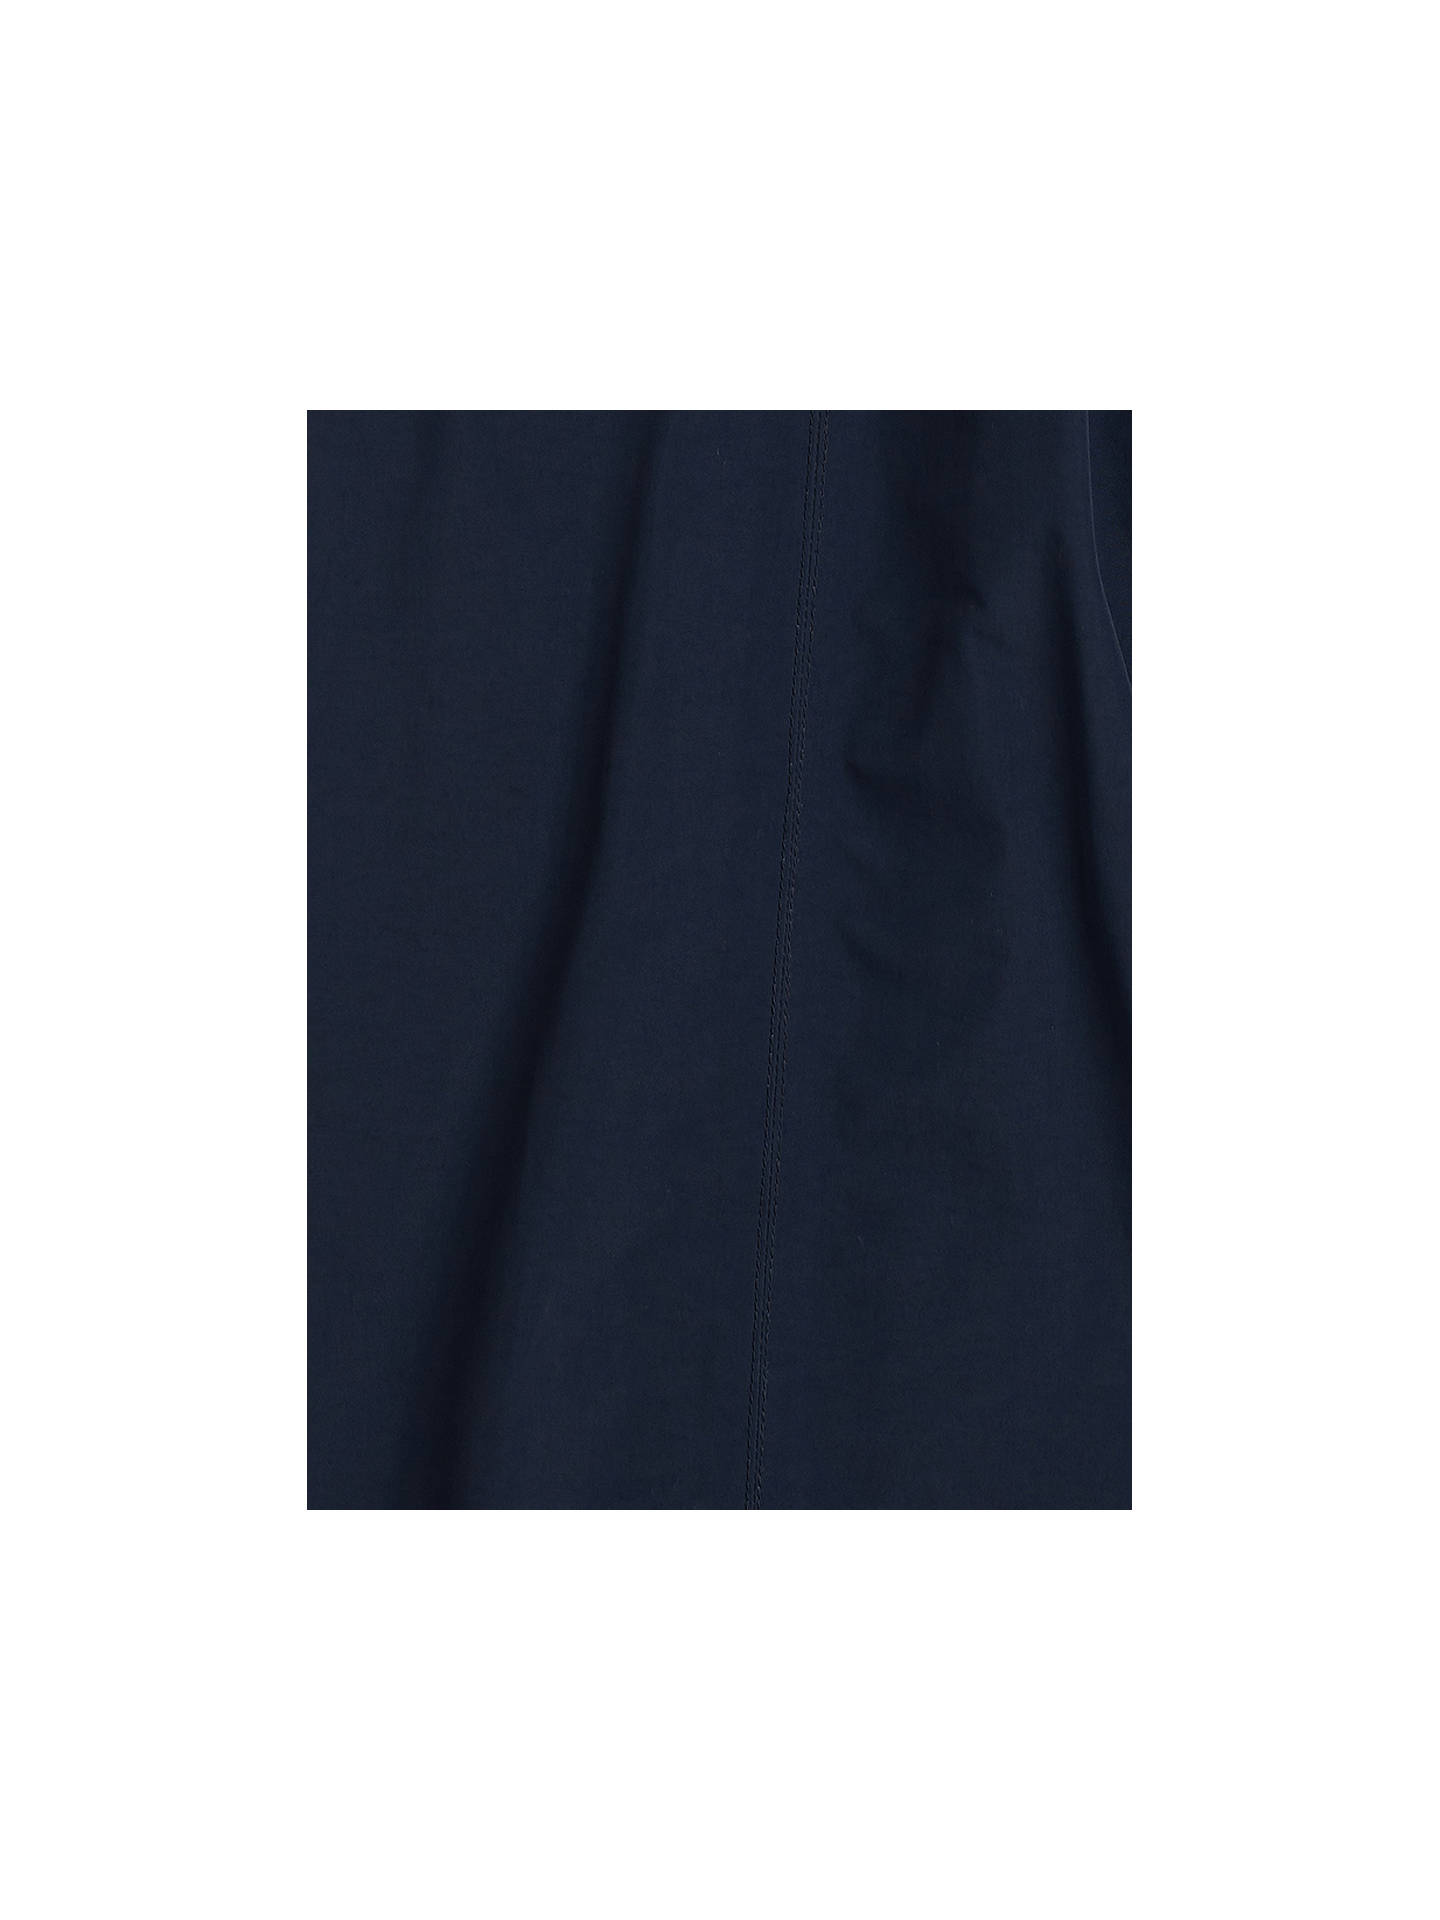 BuyBarbour International Runnel Lightweight Jacket, Navy, M Online at johnlewis.com